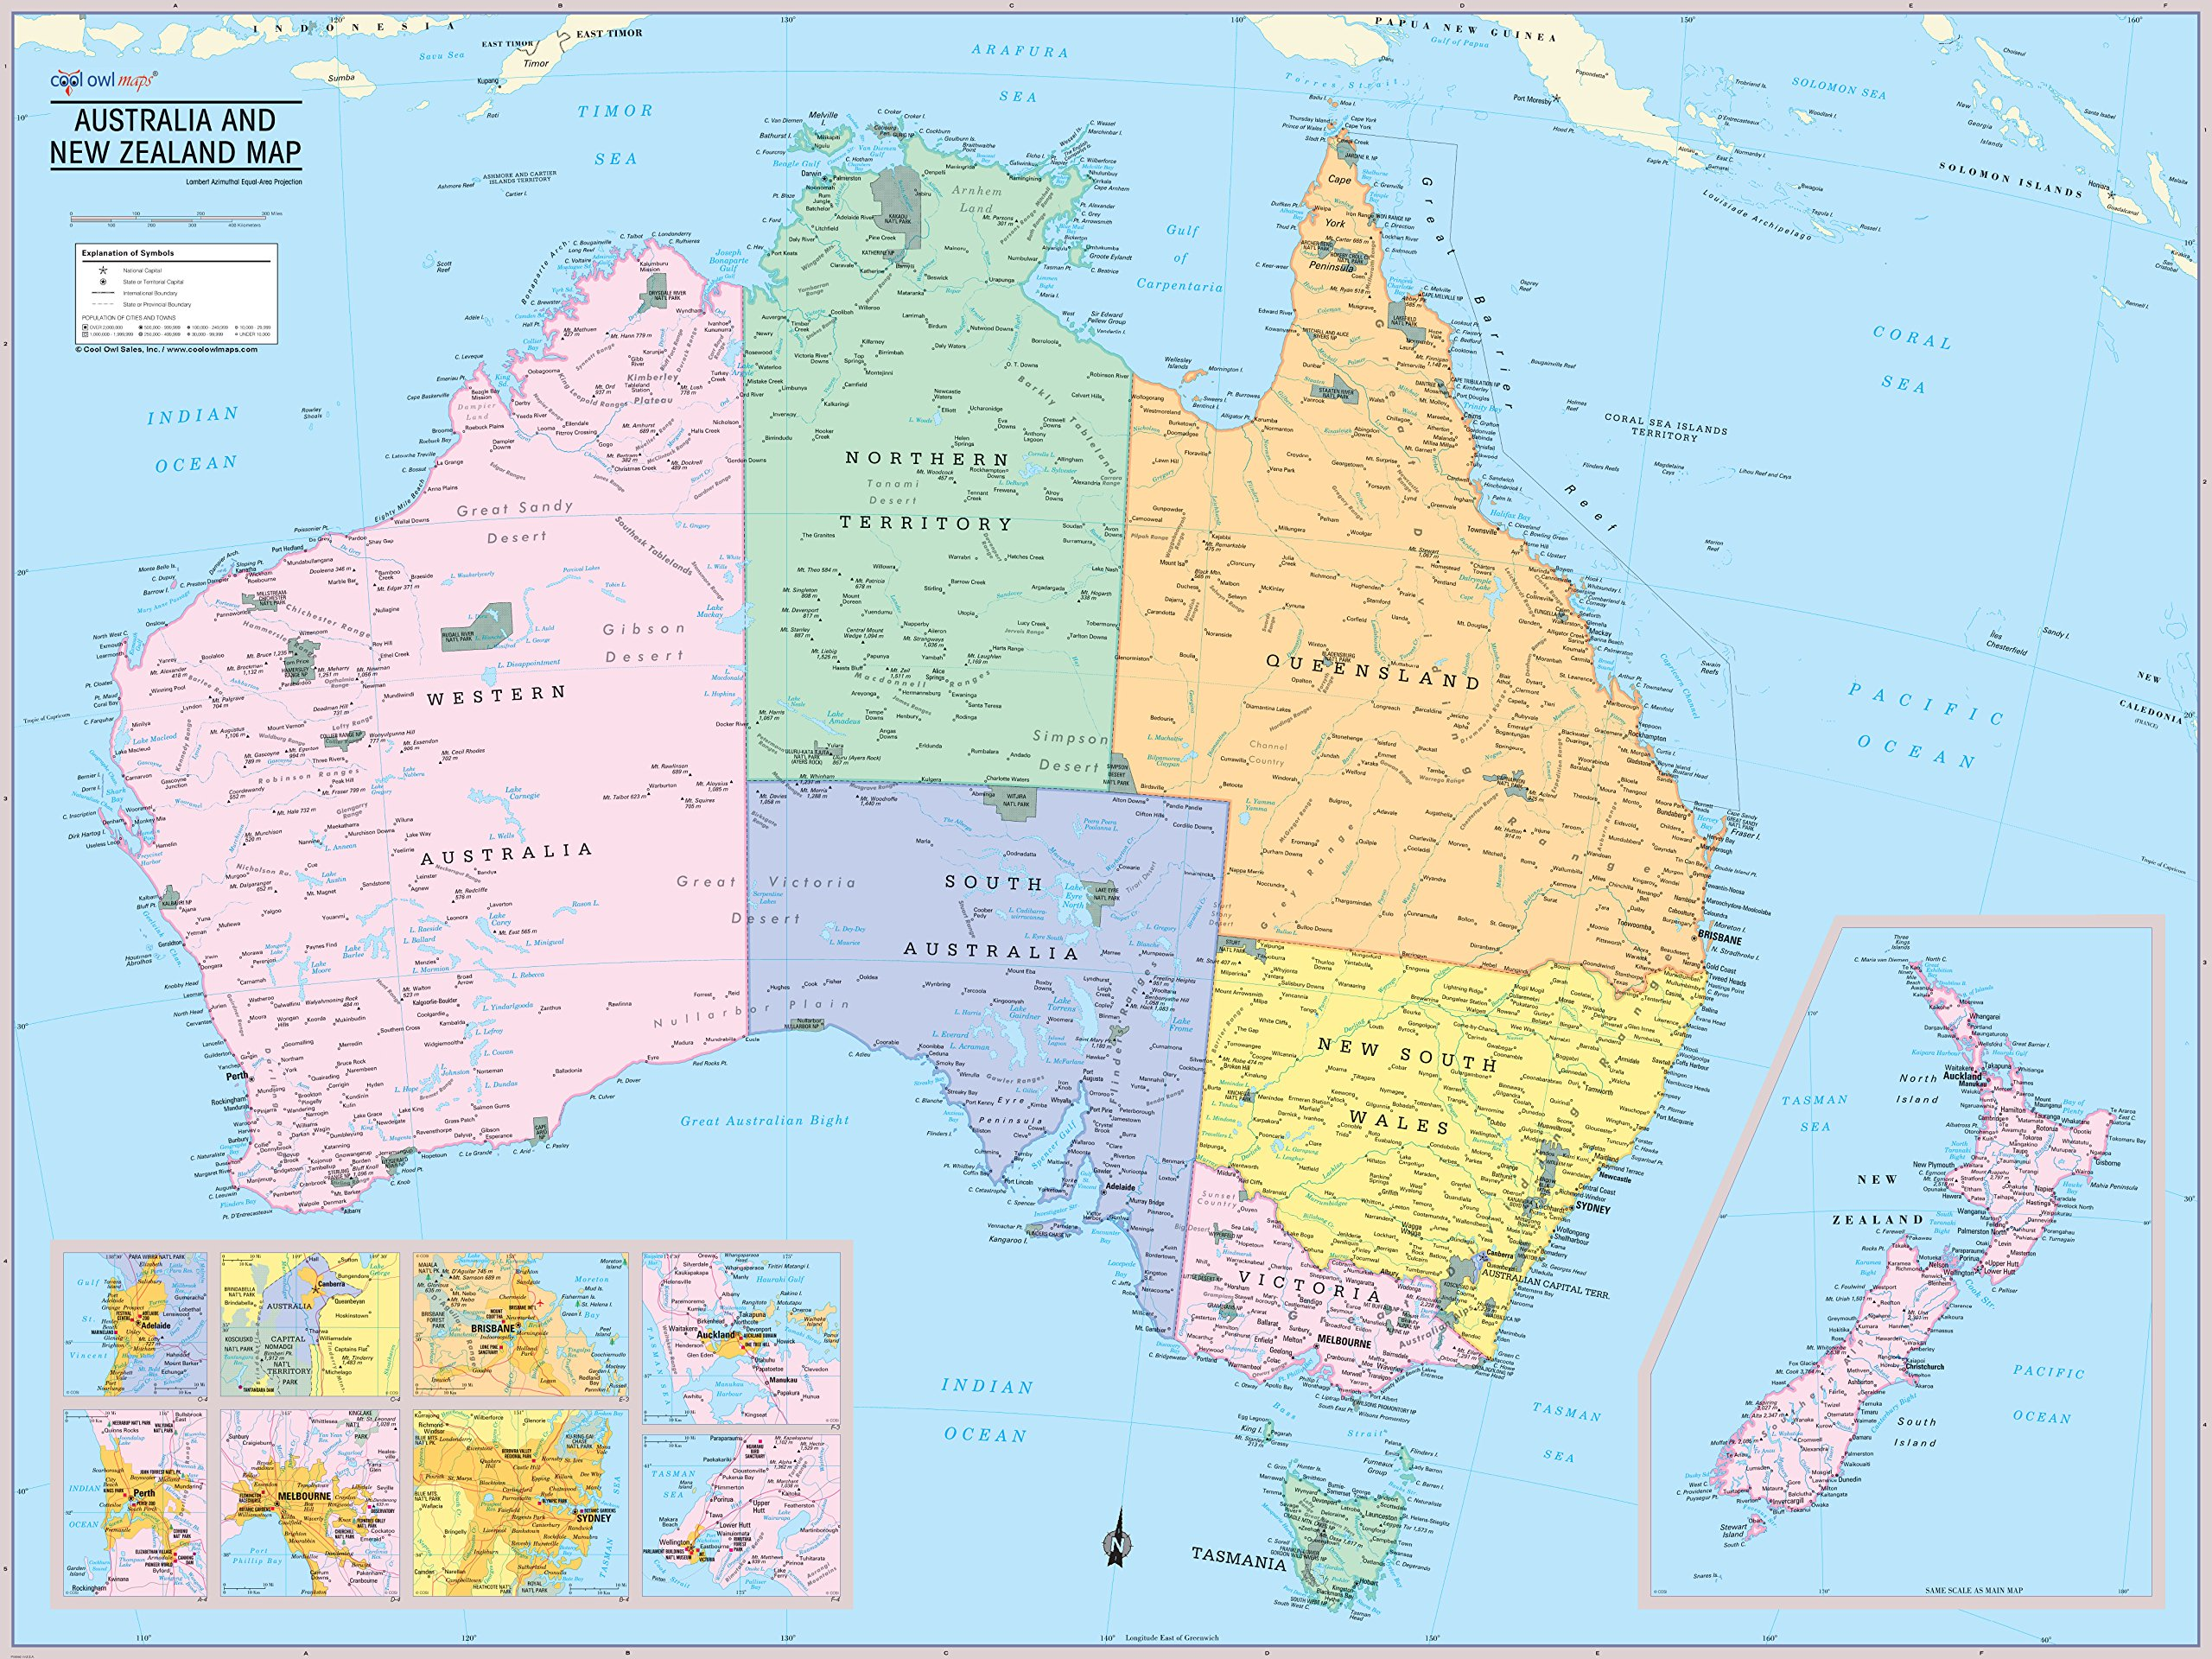 Cool Owl Maps Australia & New Zealand Wall Map Poster (Paper 40''x30'')